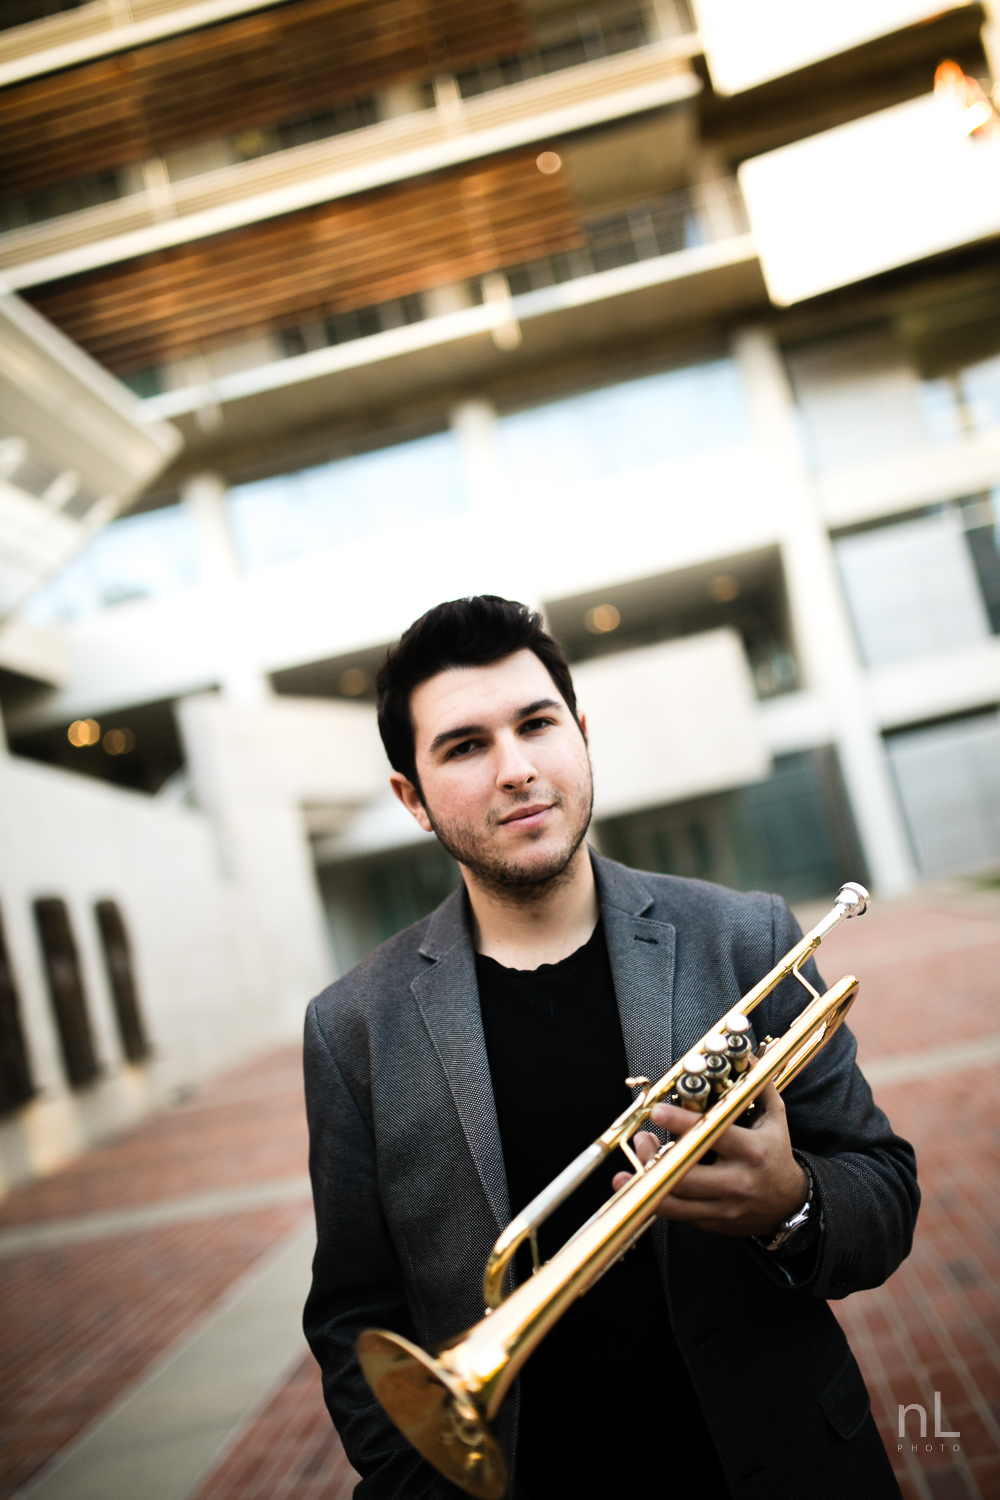 los-angeles-musician-portraits-trumpet-player-in-suit-at-ucla